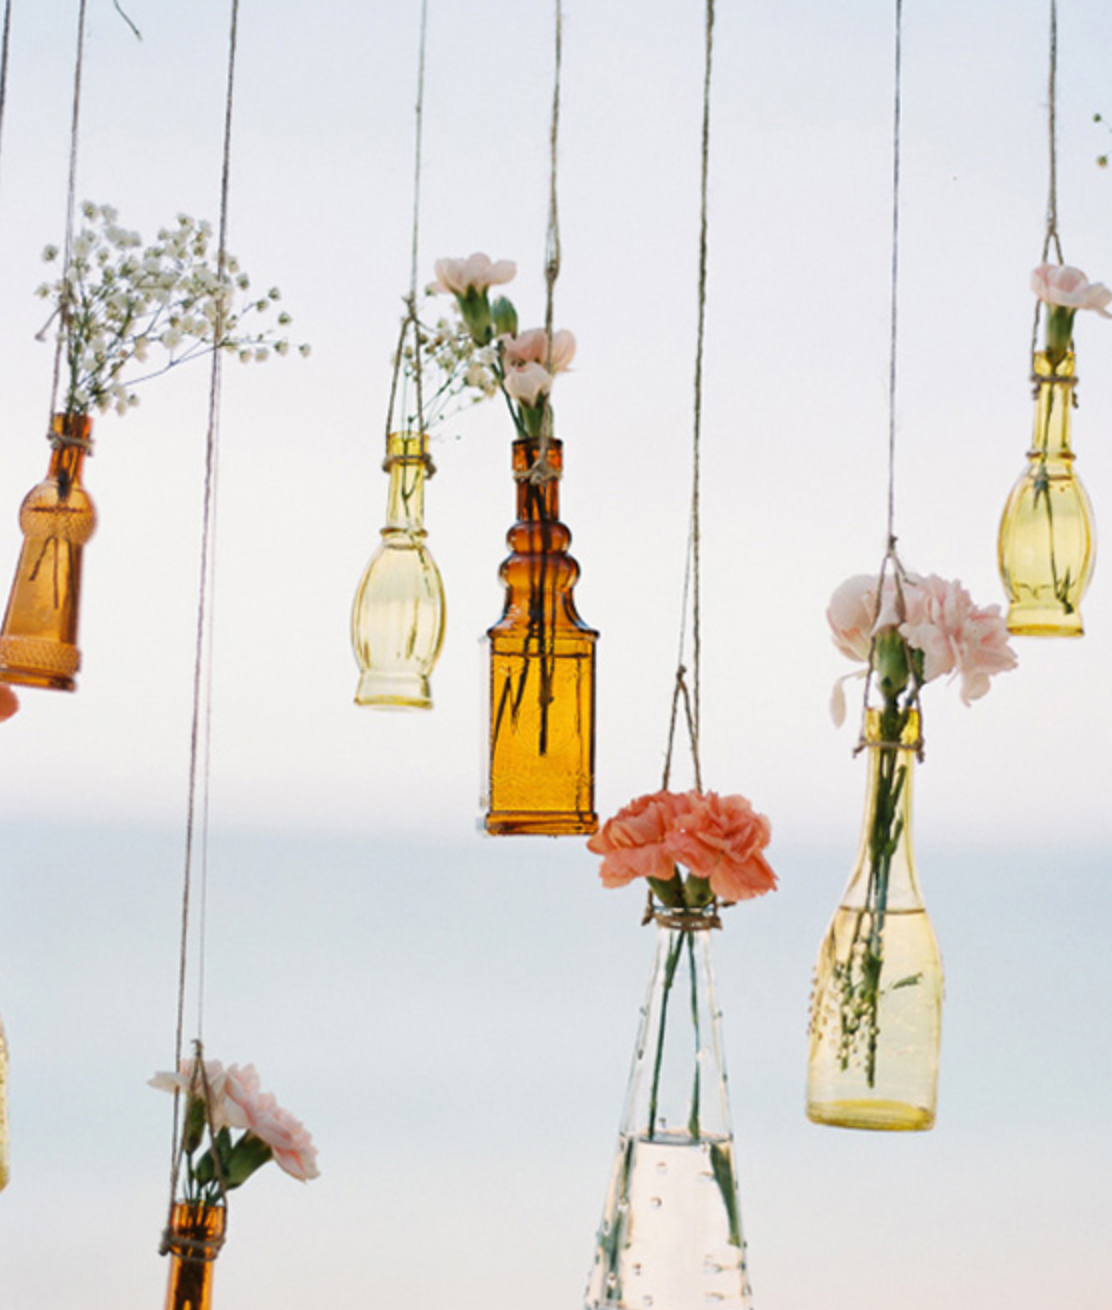 flowers in jars hanging for wedding decoration